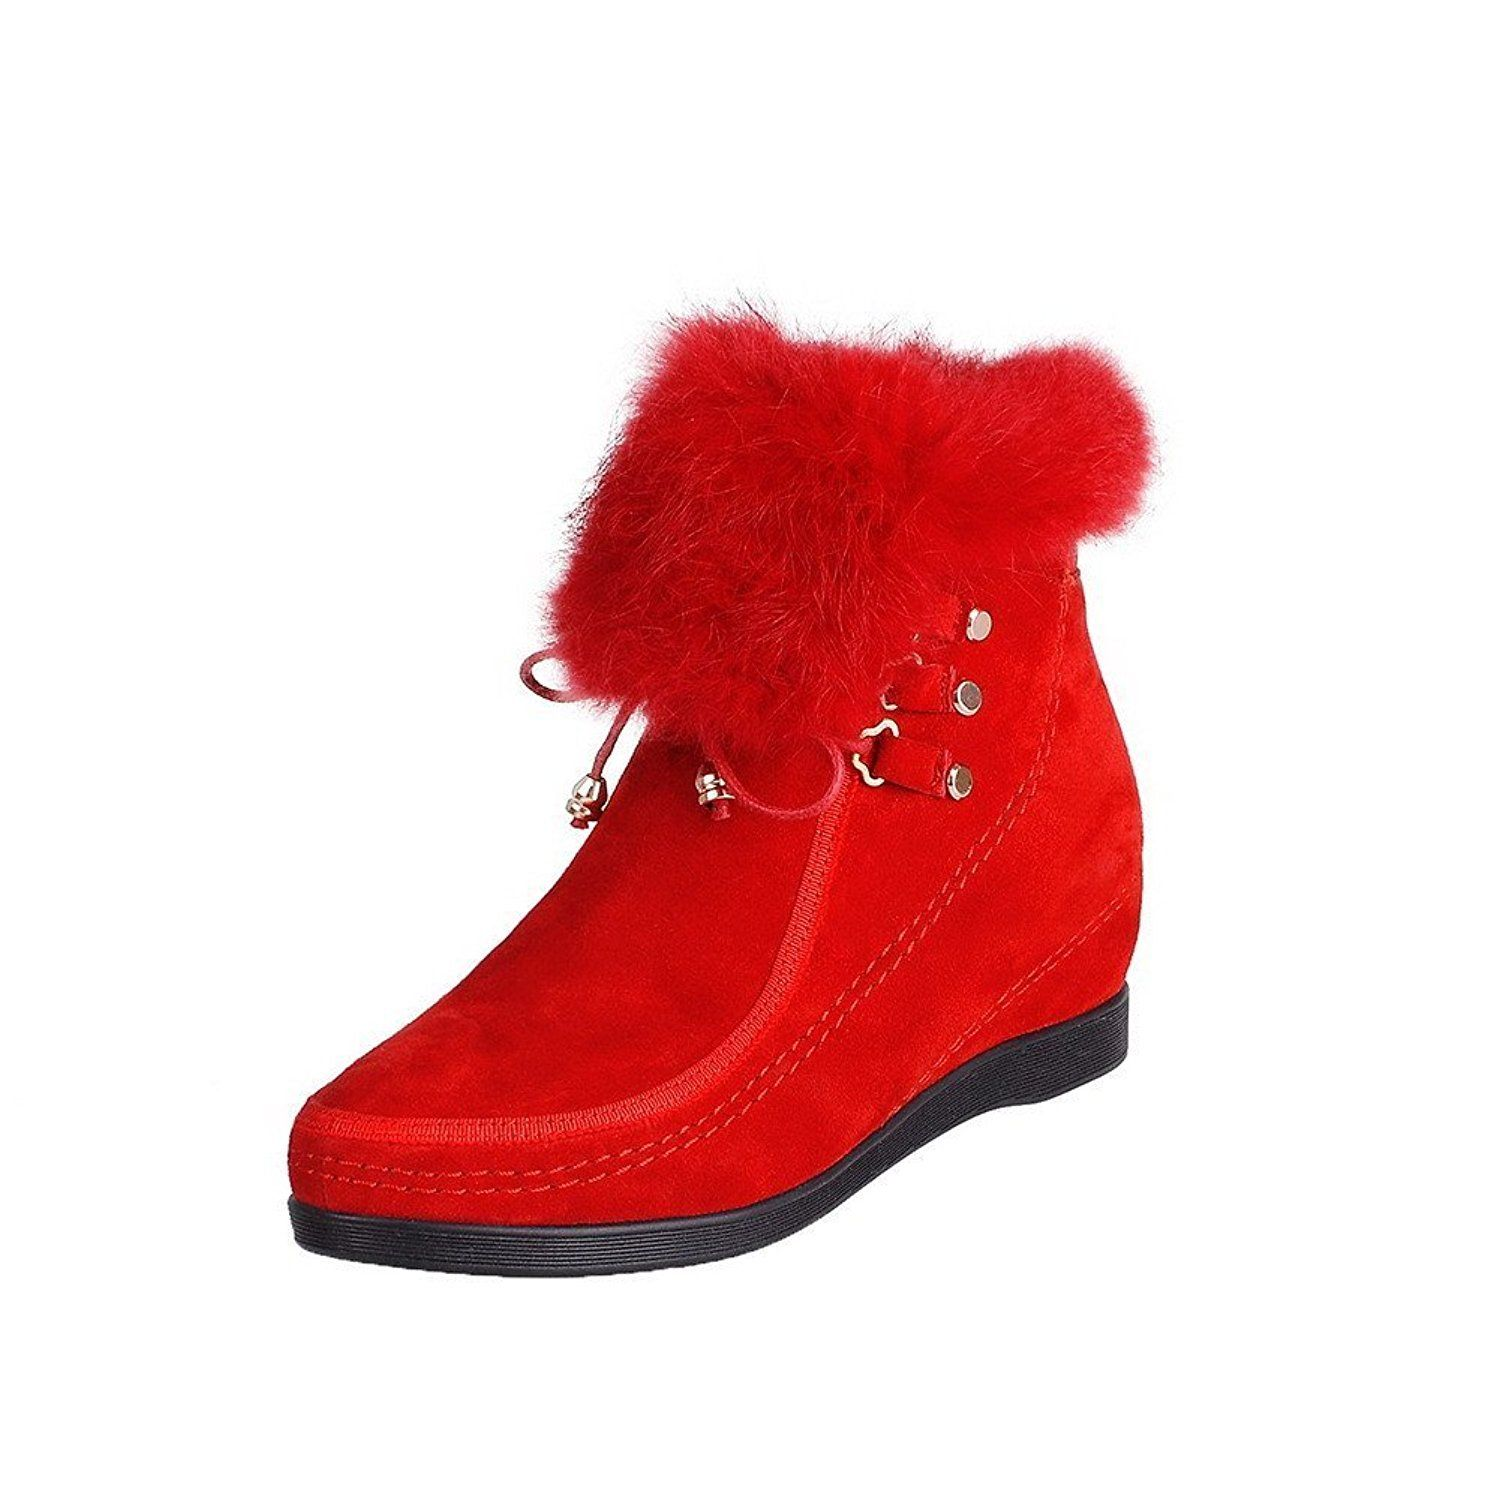 VogueZone009 Women's Frosted Round-Toe Closed-Toe Kitten-Heels Solid Boots >>> More info could be found at the image url.